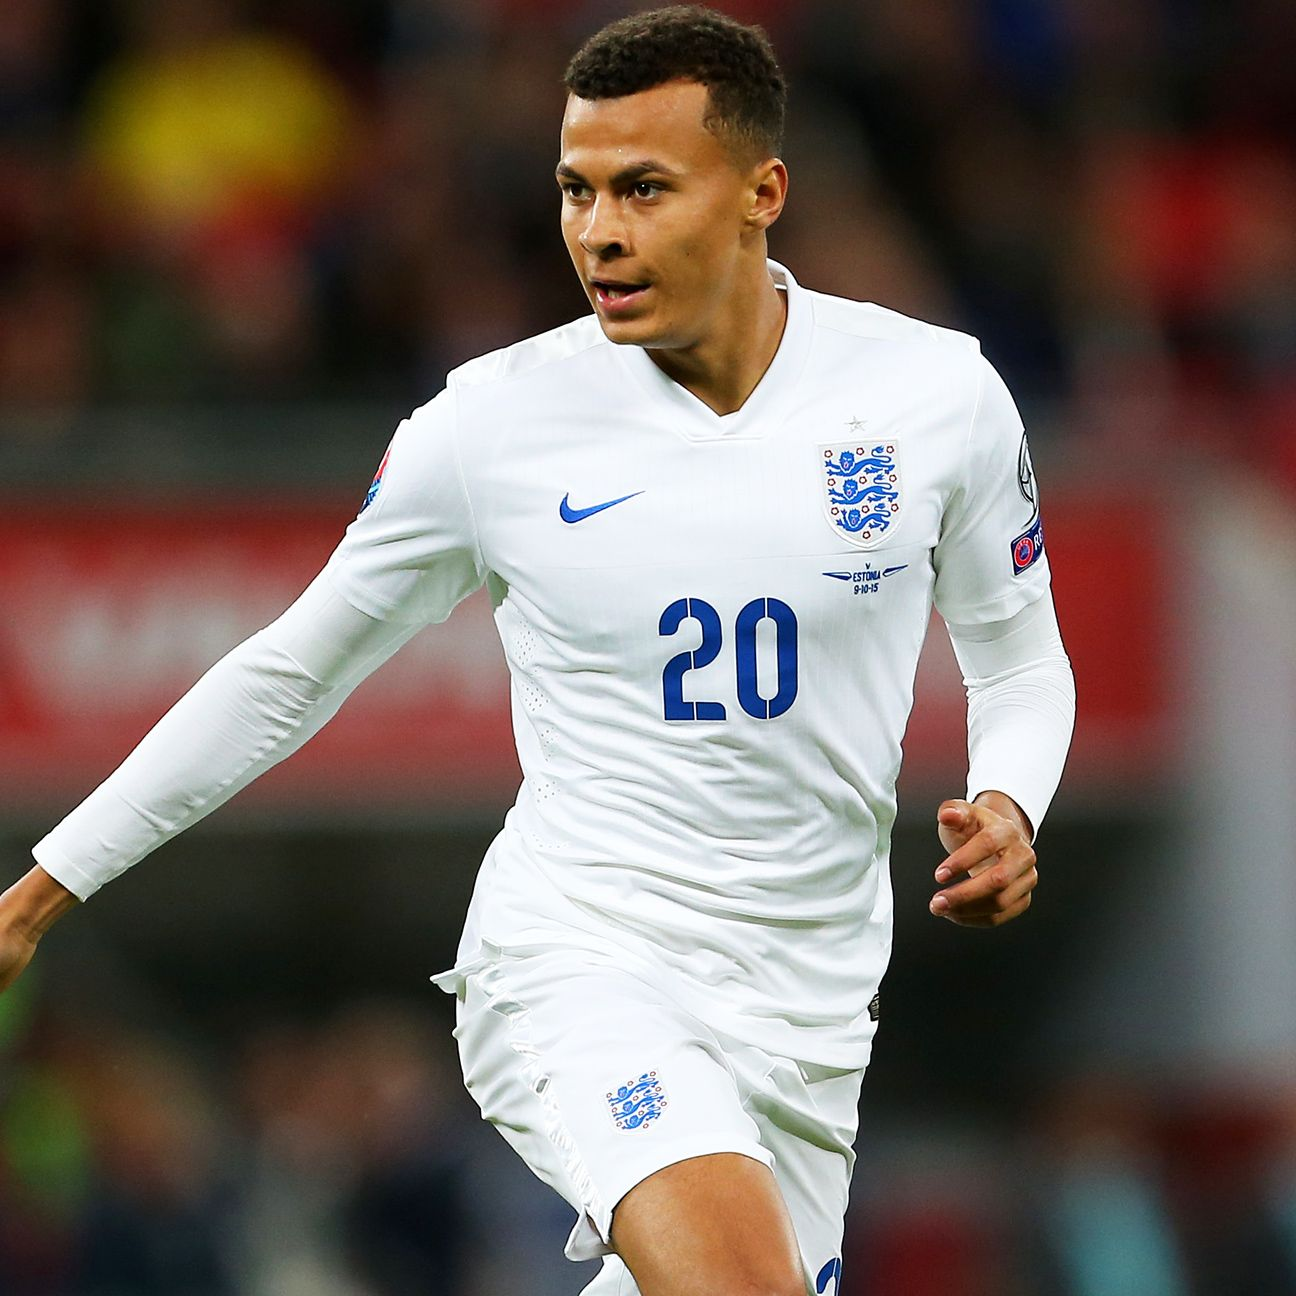 Tottenham attacking midfielder Dele Alli, 19, has already scored for England's senior team.